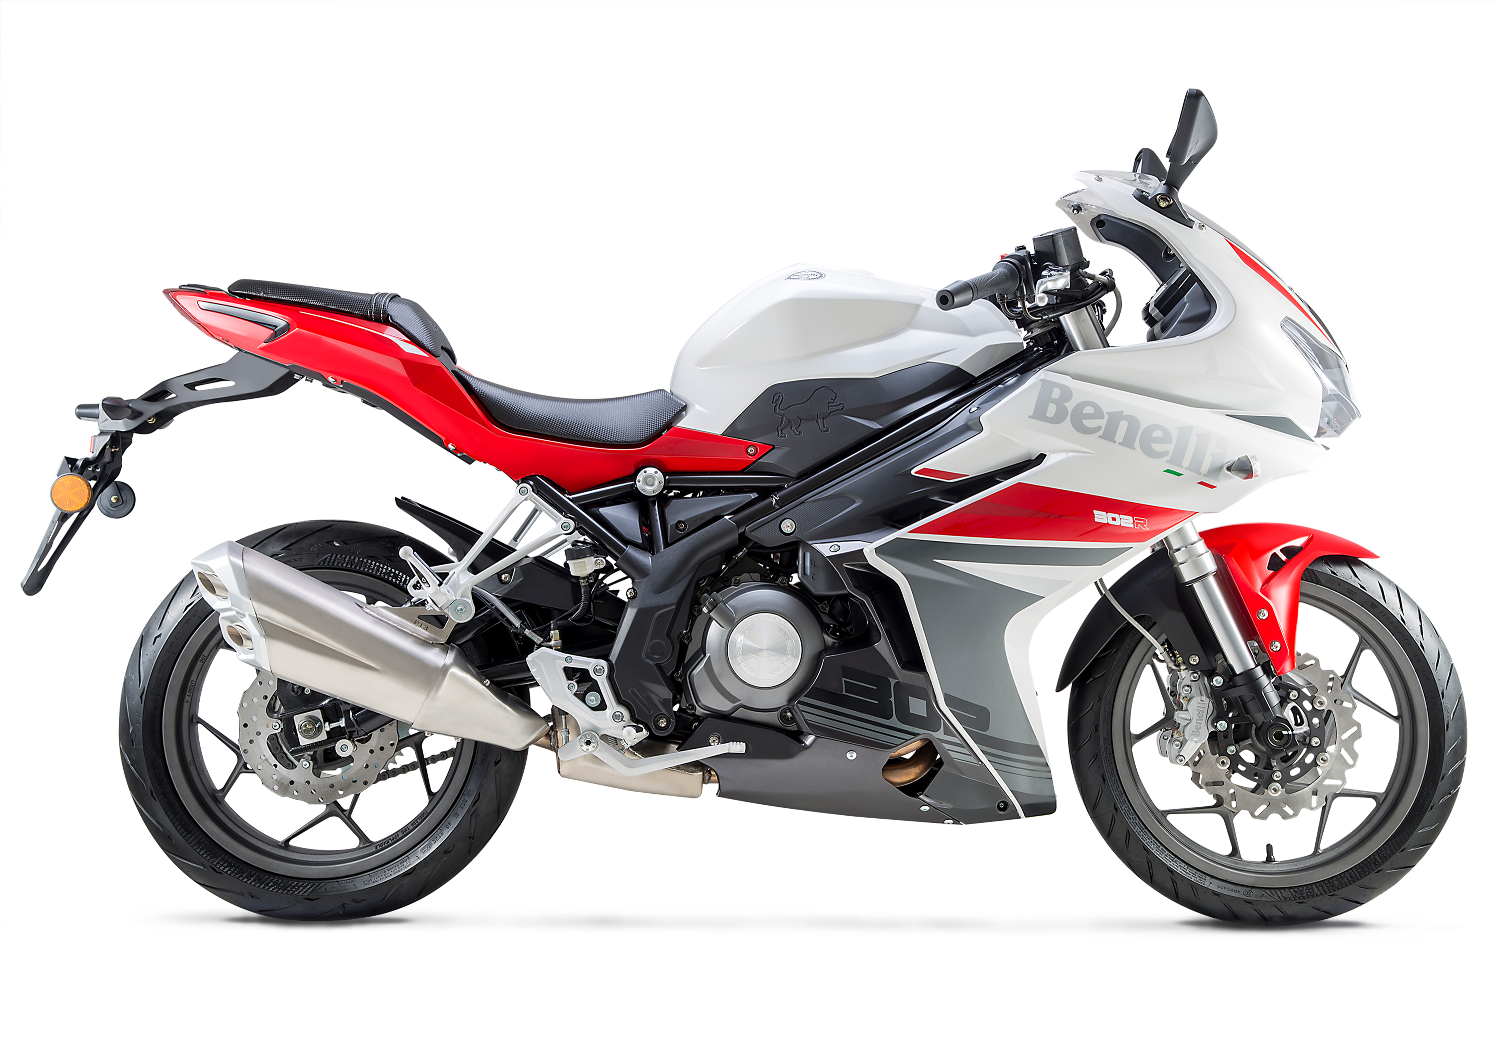 Benelli Appoints New D...